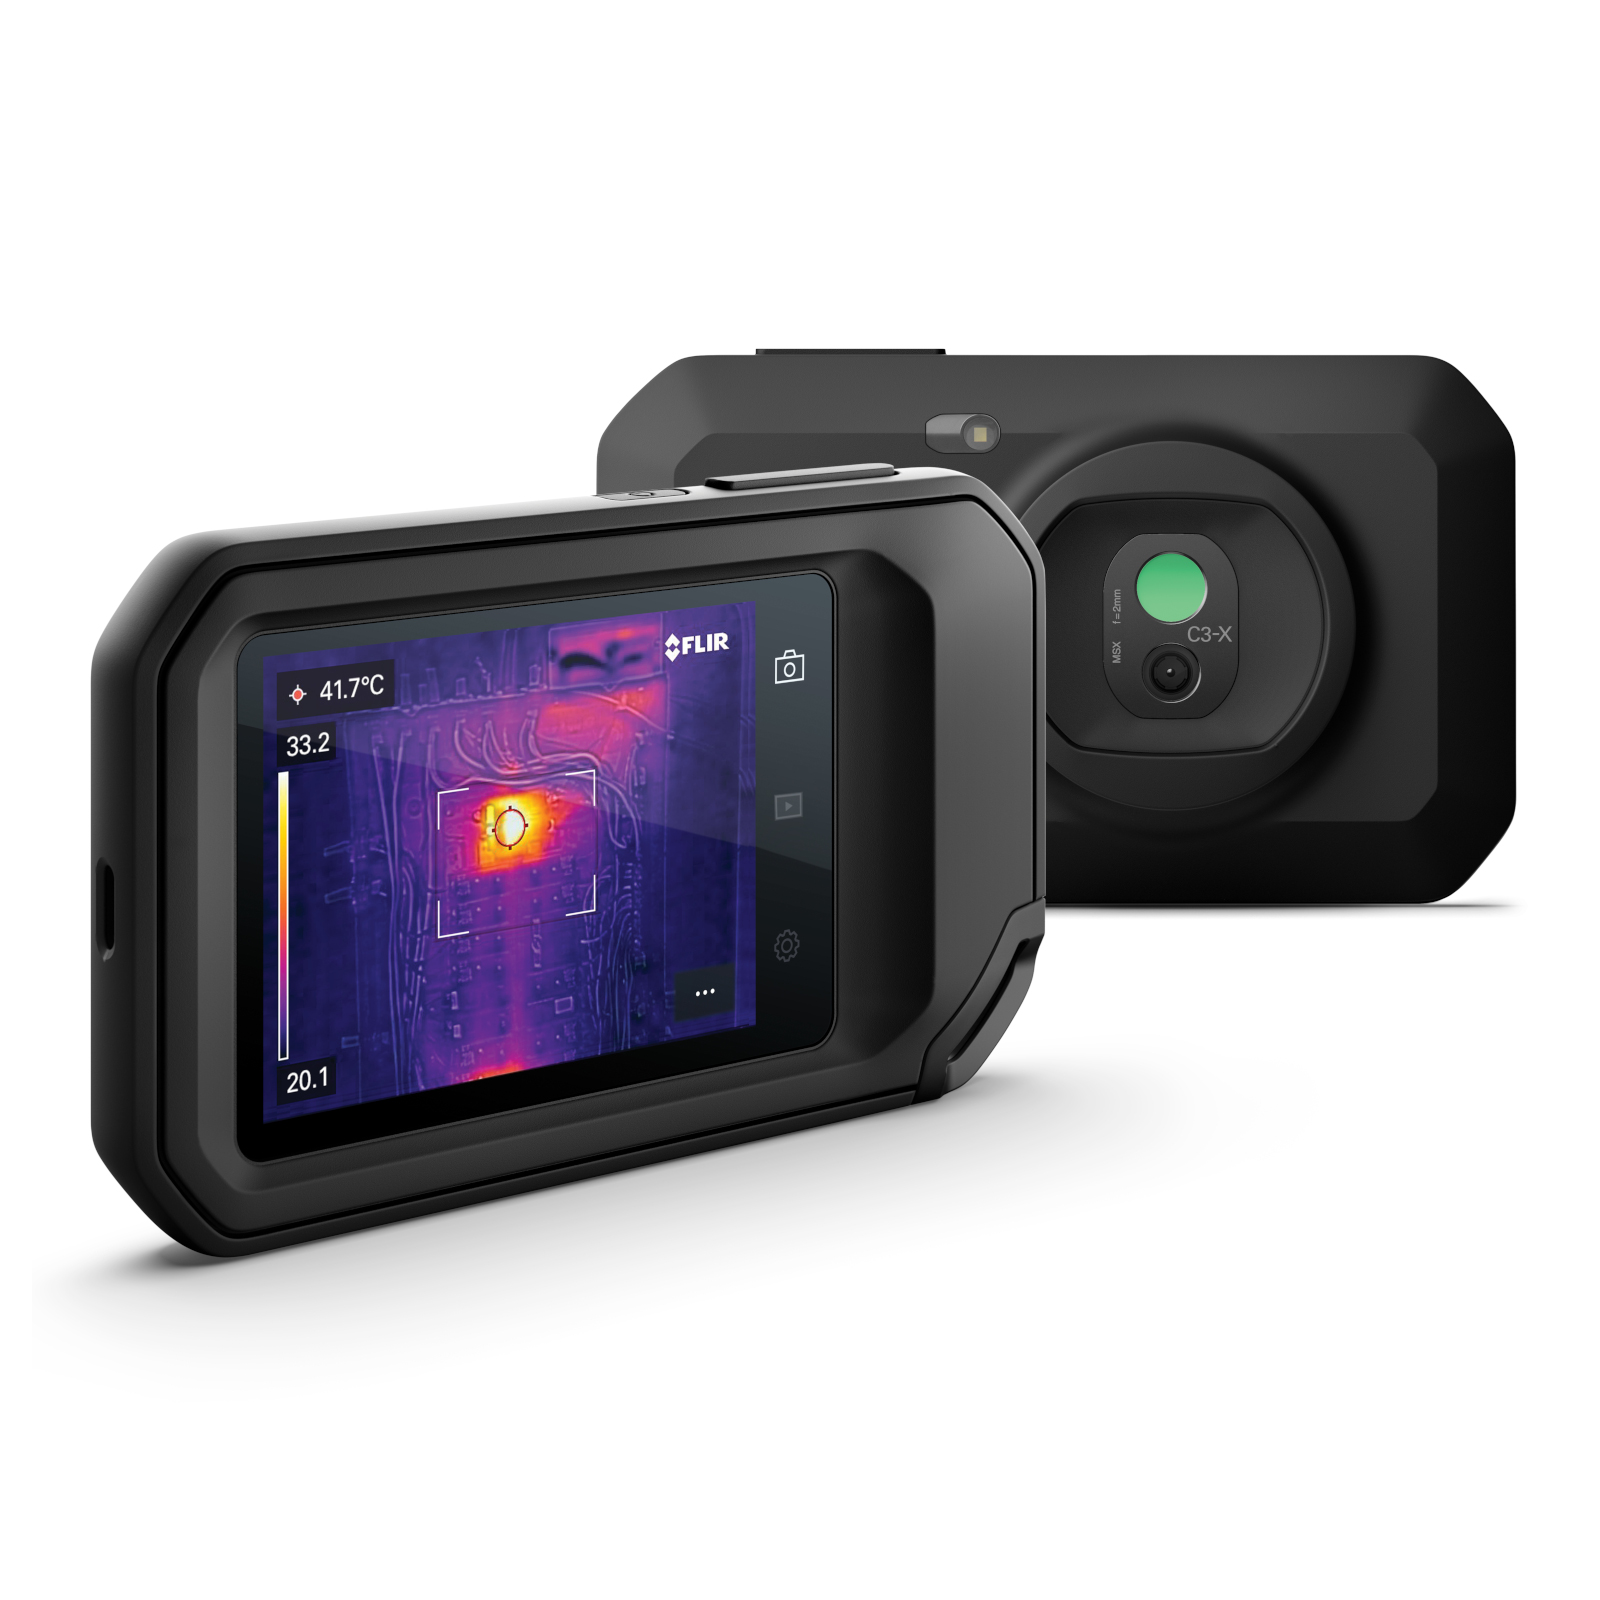 Flir C3-X Compact Thermal Camera with WiFi Resolution 128x96